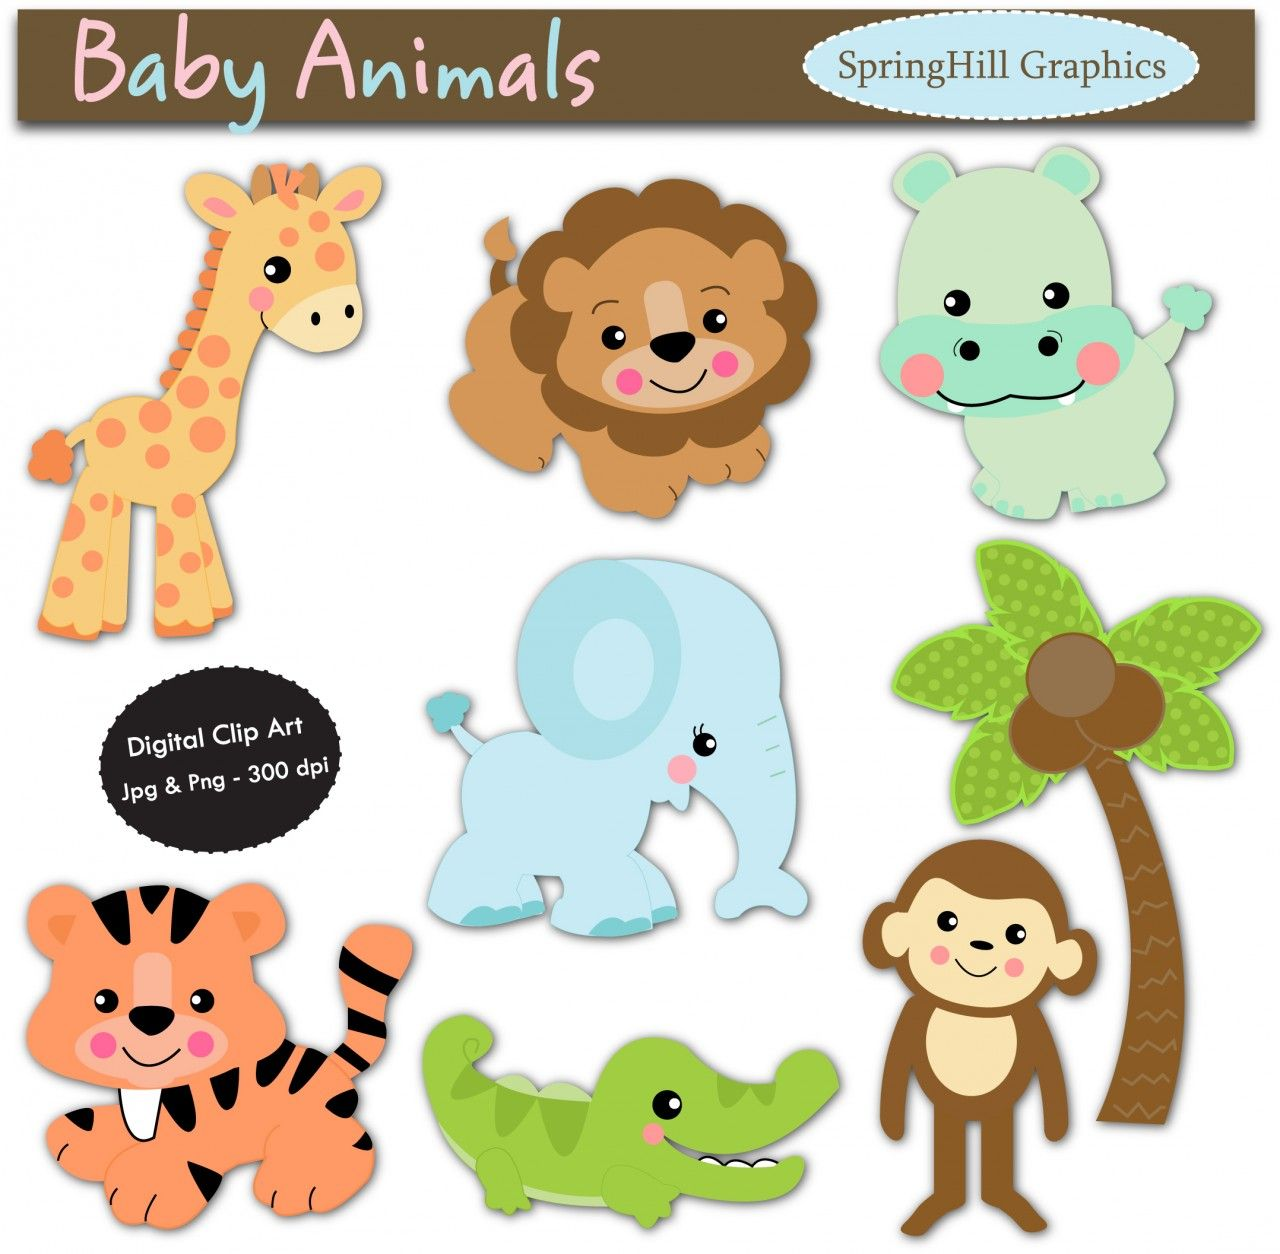 Not Free But Cute Clip Art Invitations Also Sell Matching Papers